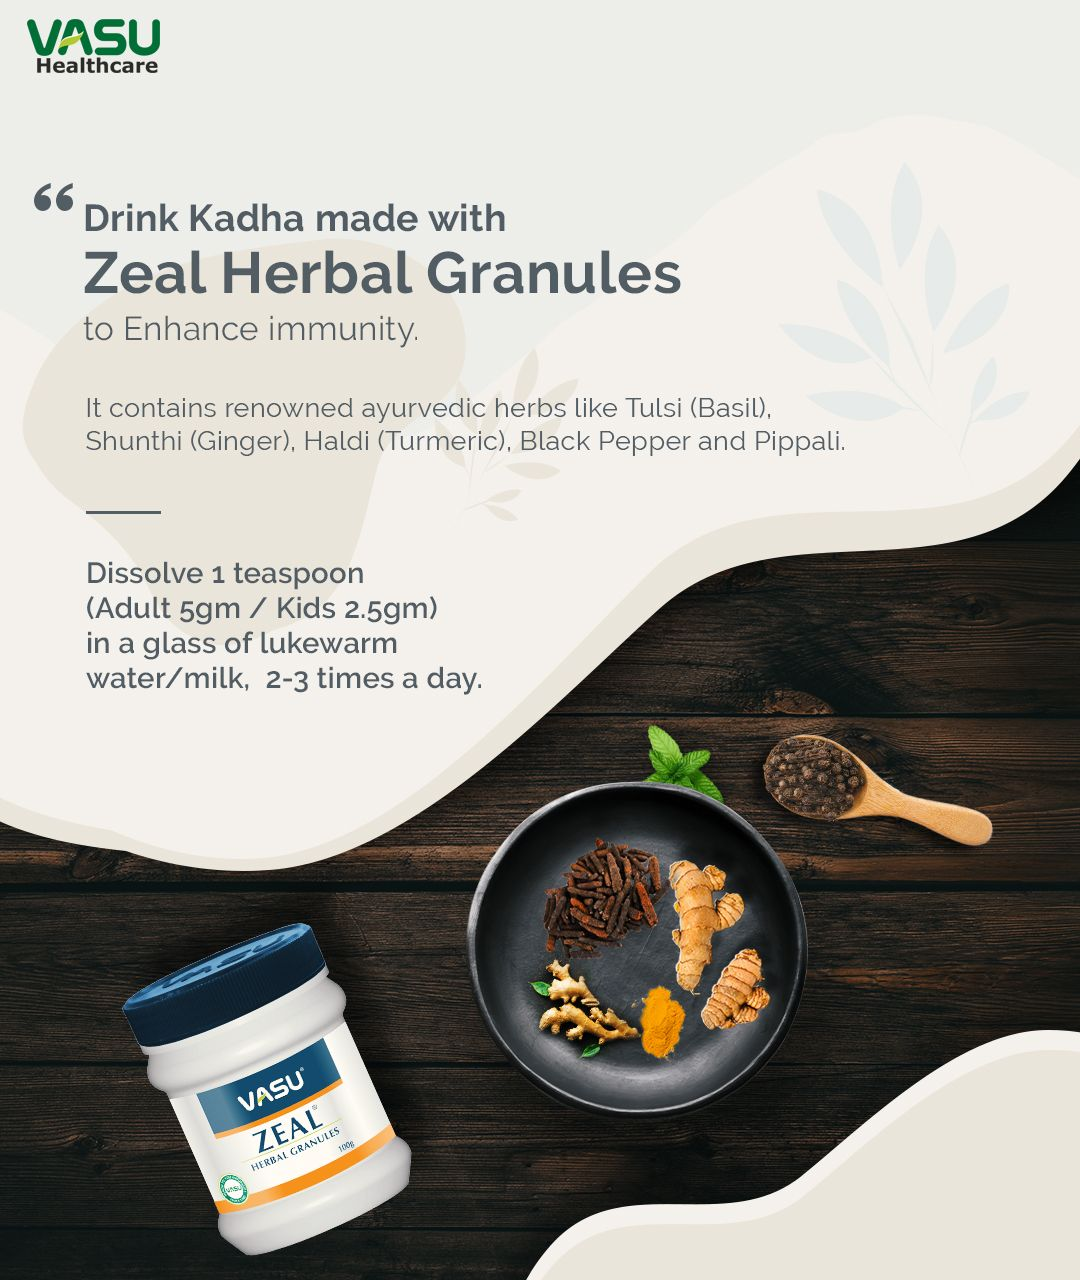 Drink Kadha made with Zeal Herbal Granules to Enhance